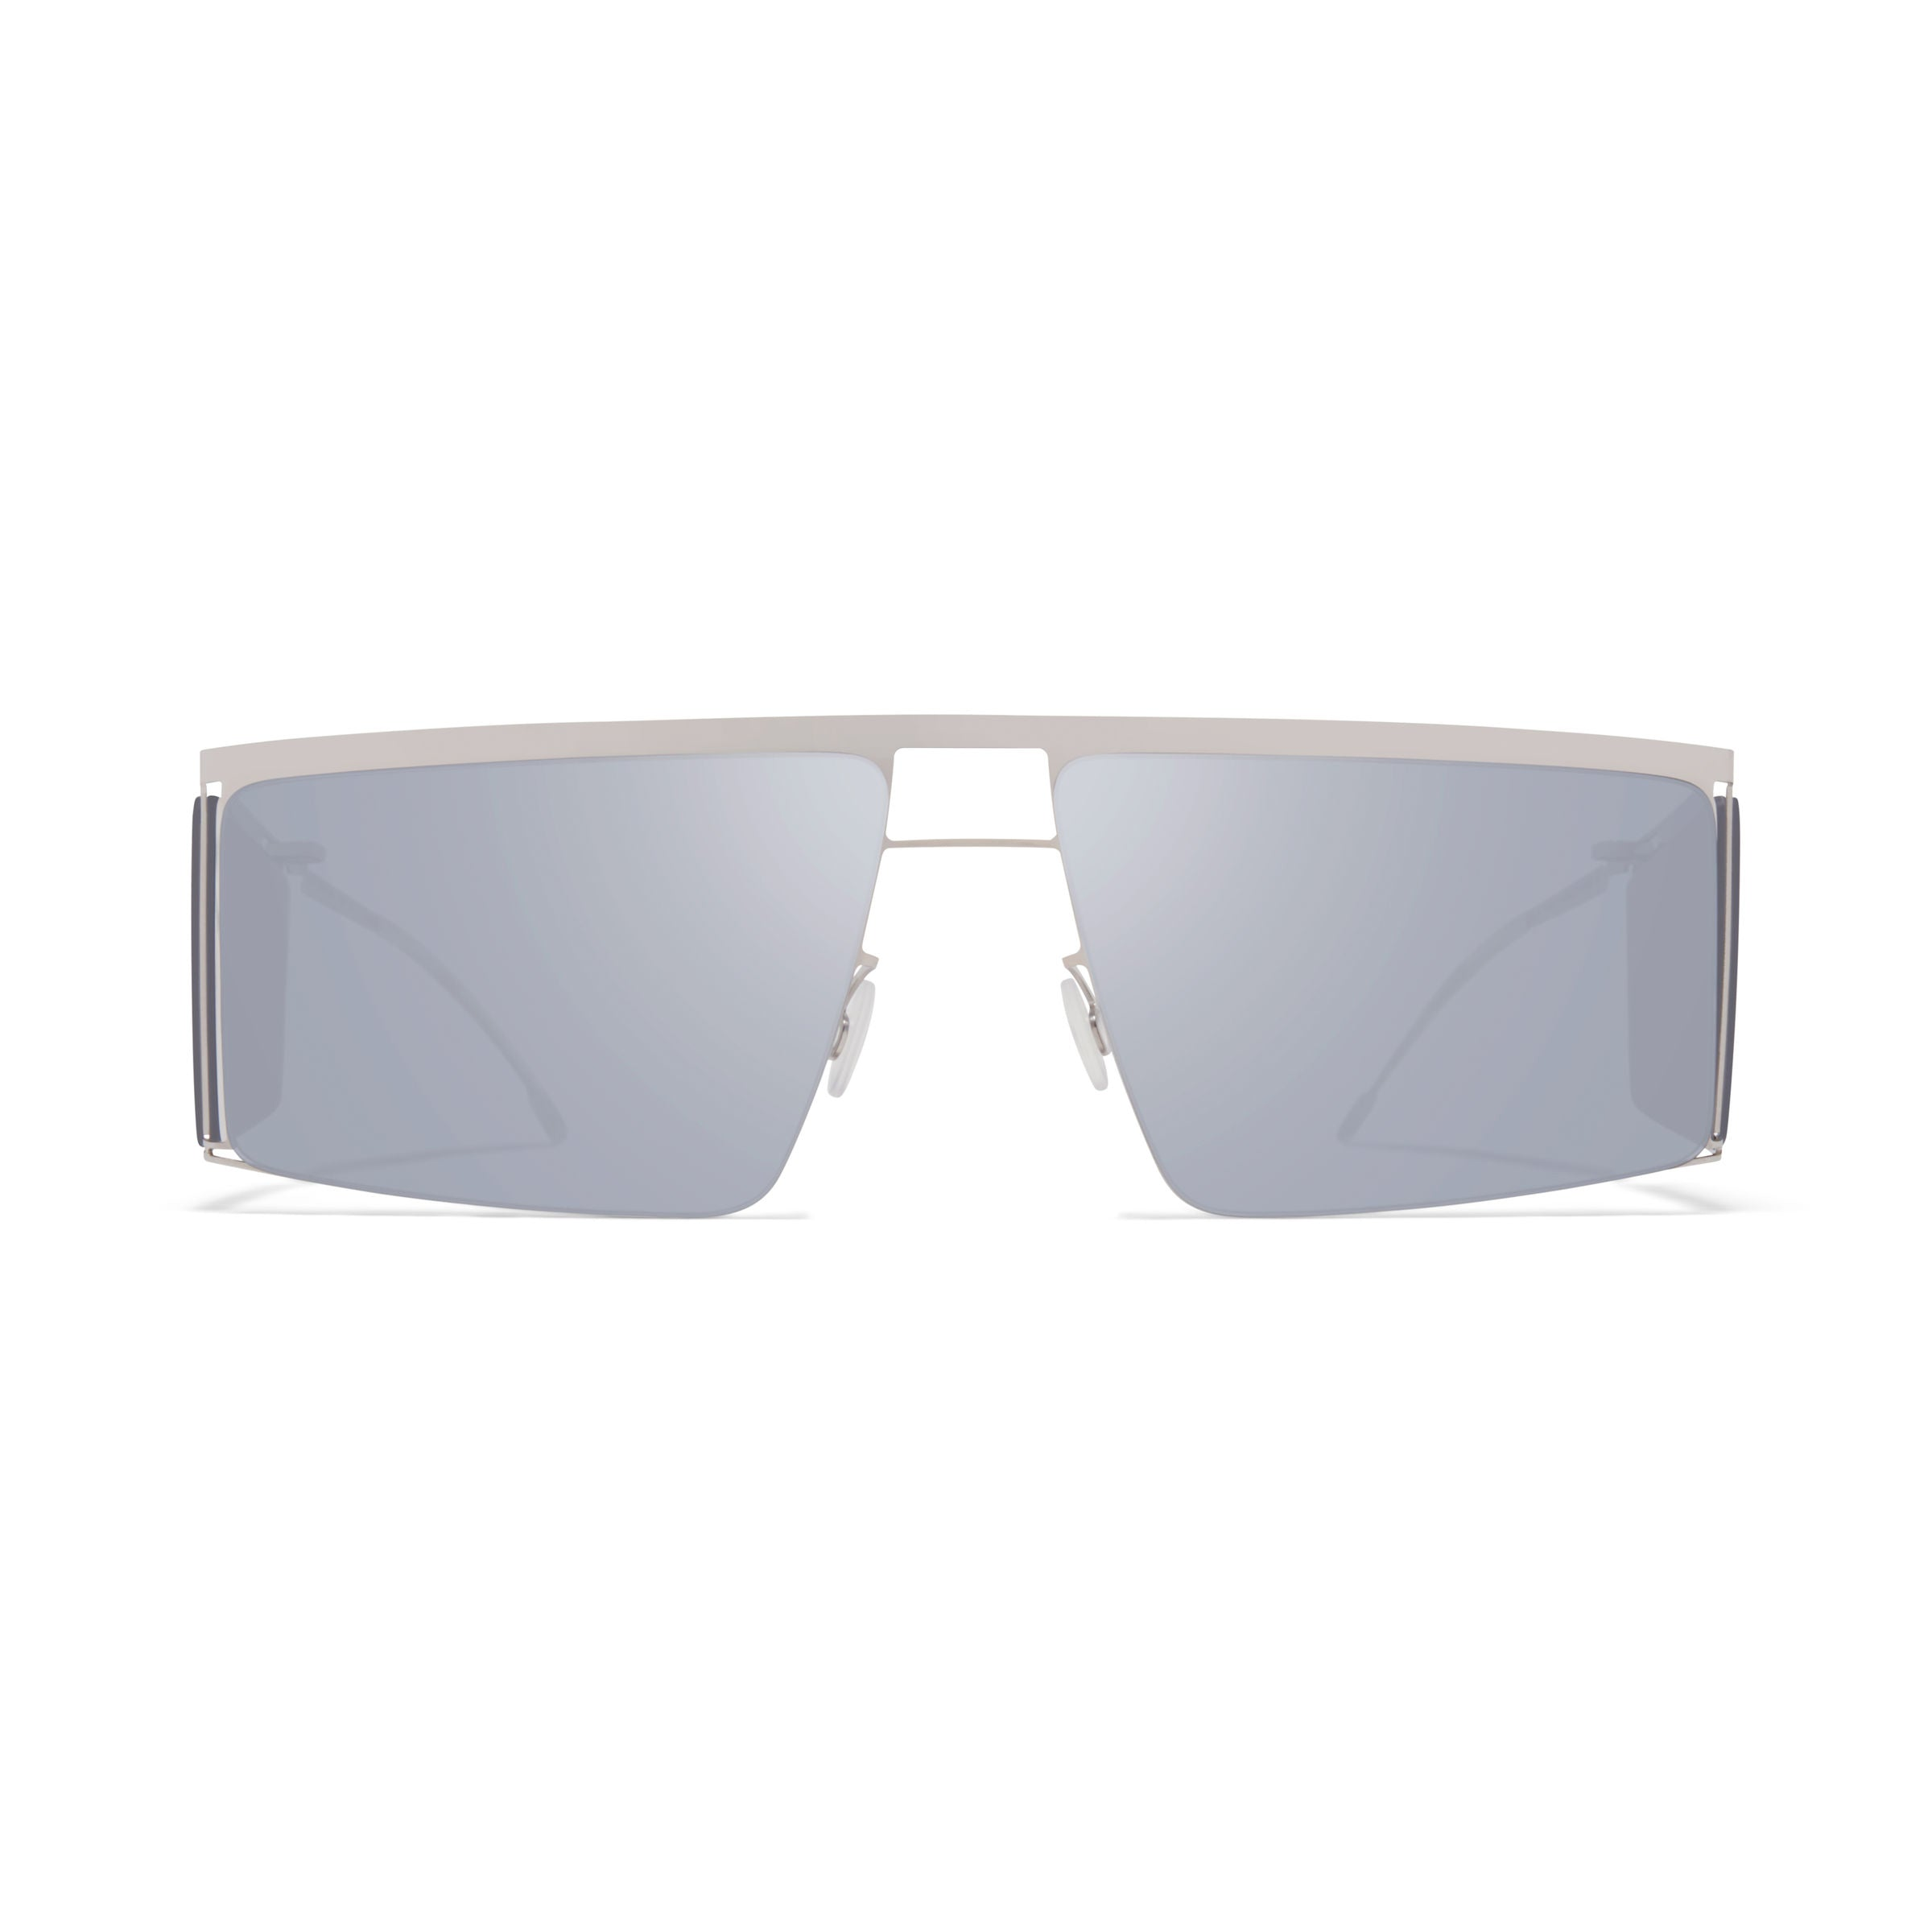 MYKITA x Helmut Lang // HL001 in Shiny Silver/Soft Grey Sides with Silver Flash Lenses